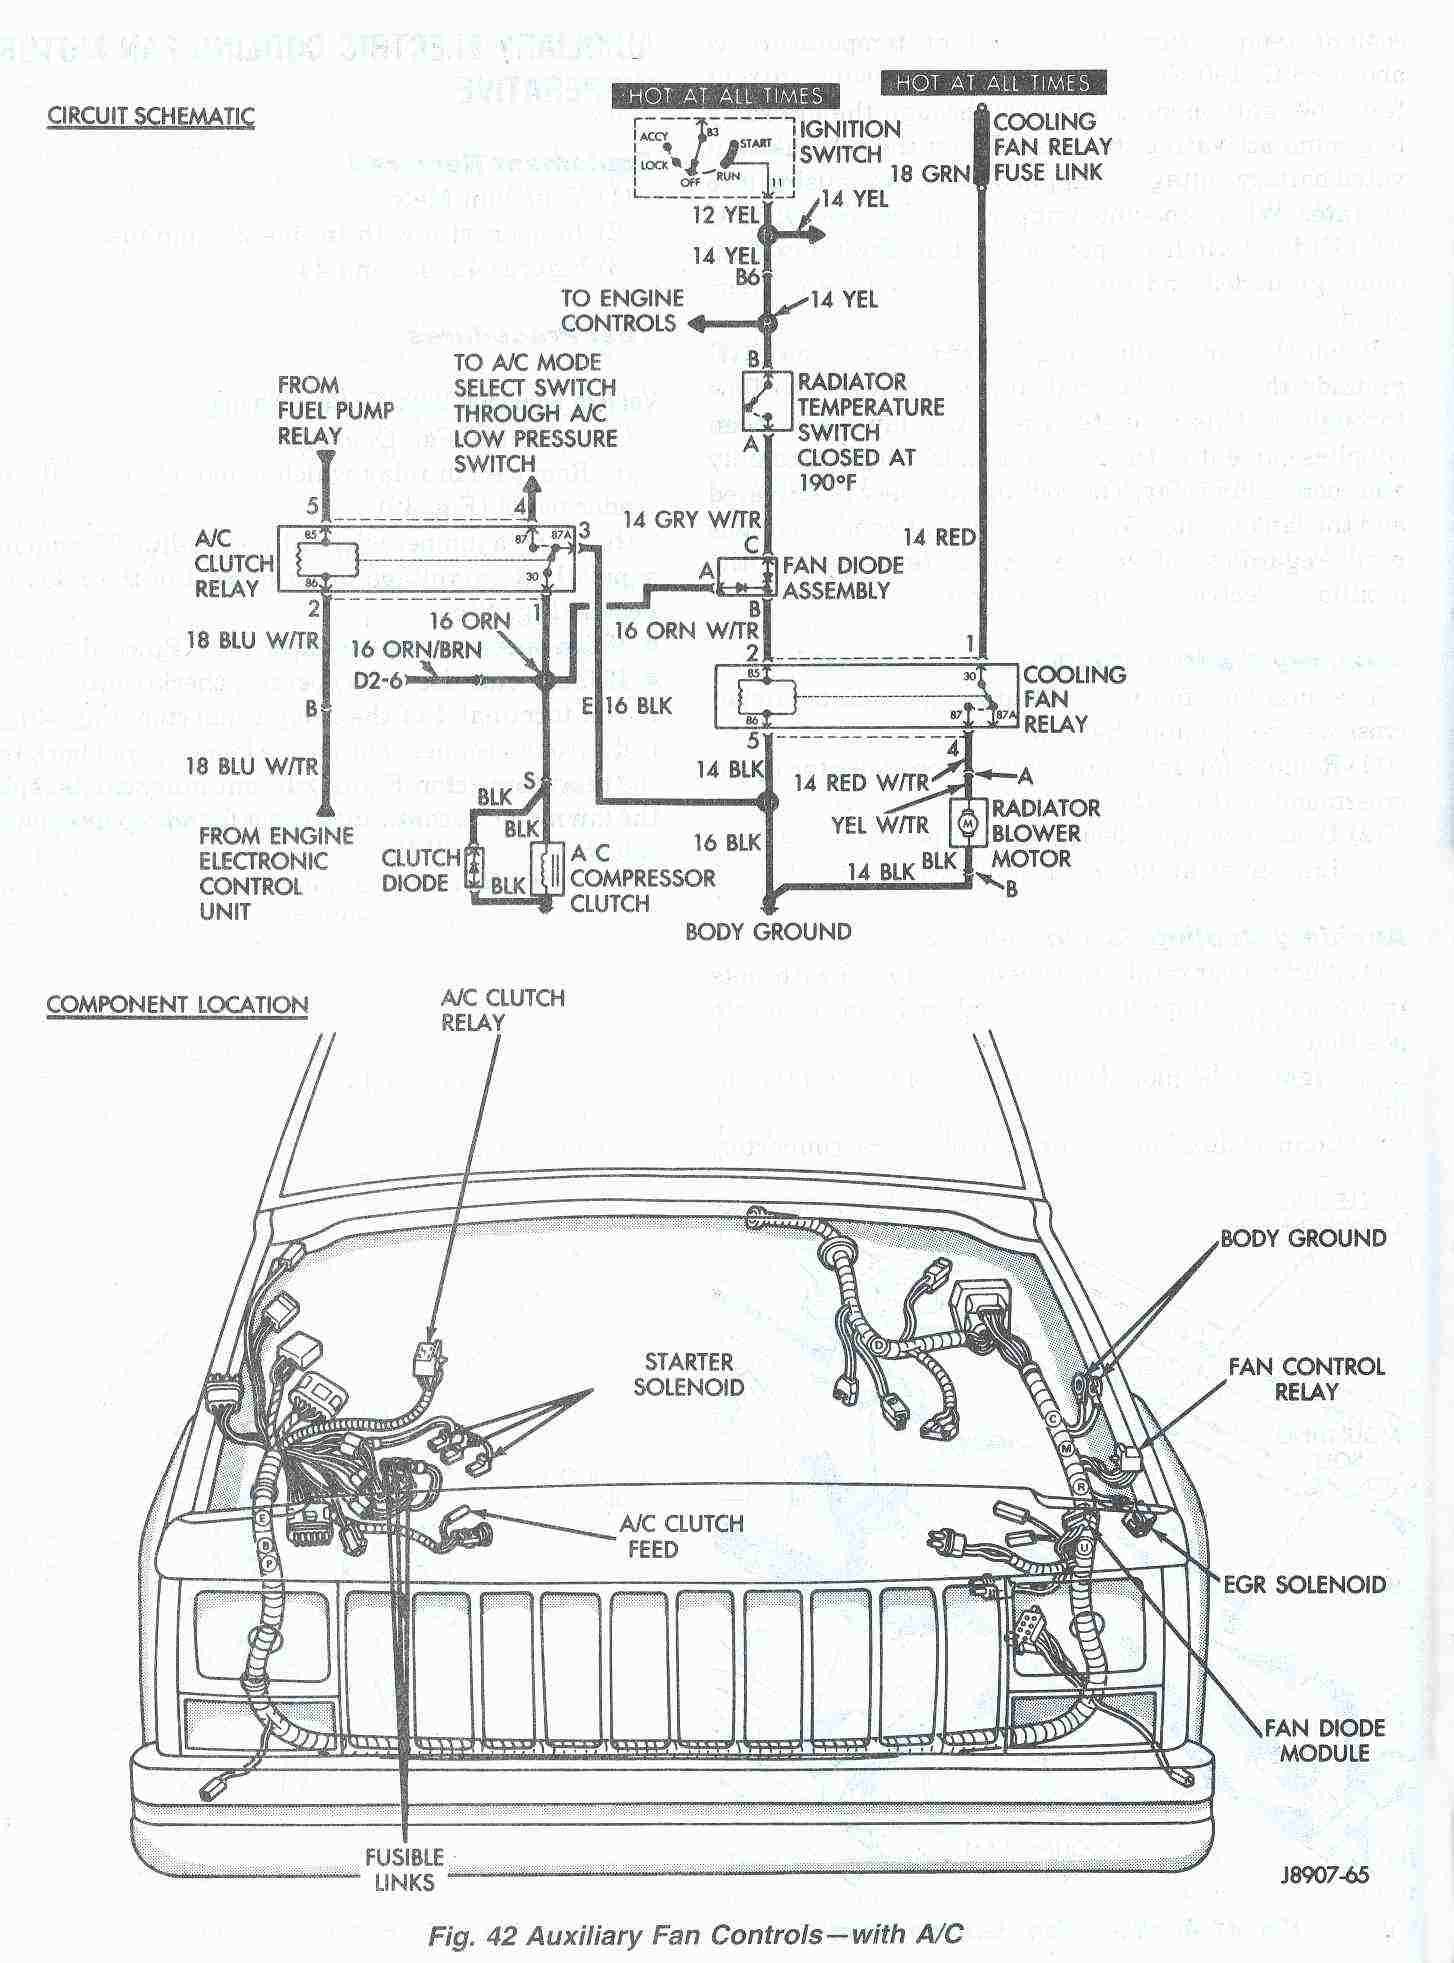 e8c83109bad6c41d377df8c1cb7a8dc4 auxiliary_fan_schematic_fig_42 jpg (1454�1963) cherokee diagrams  at bayanpartner.co